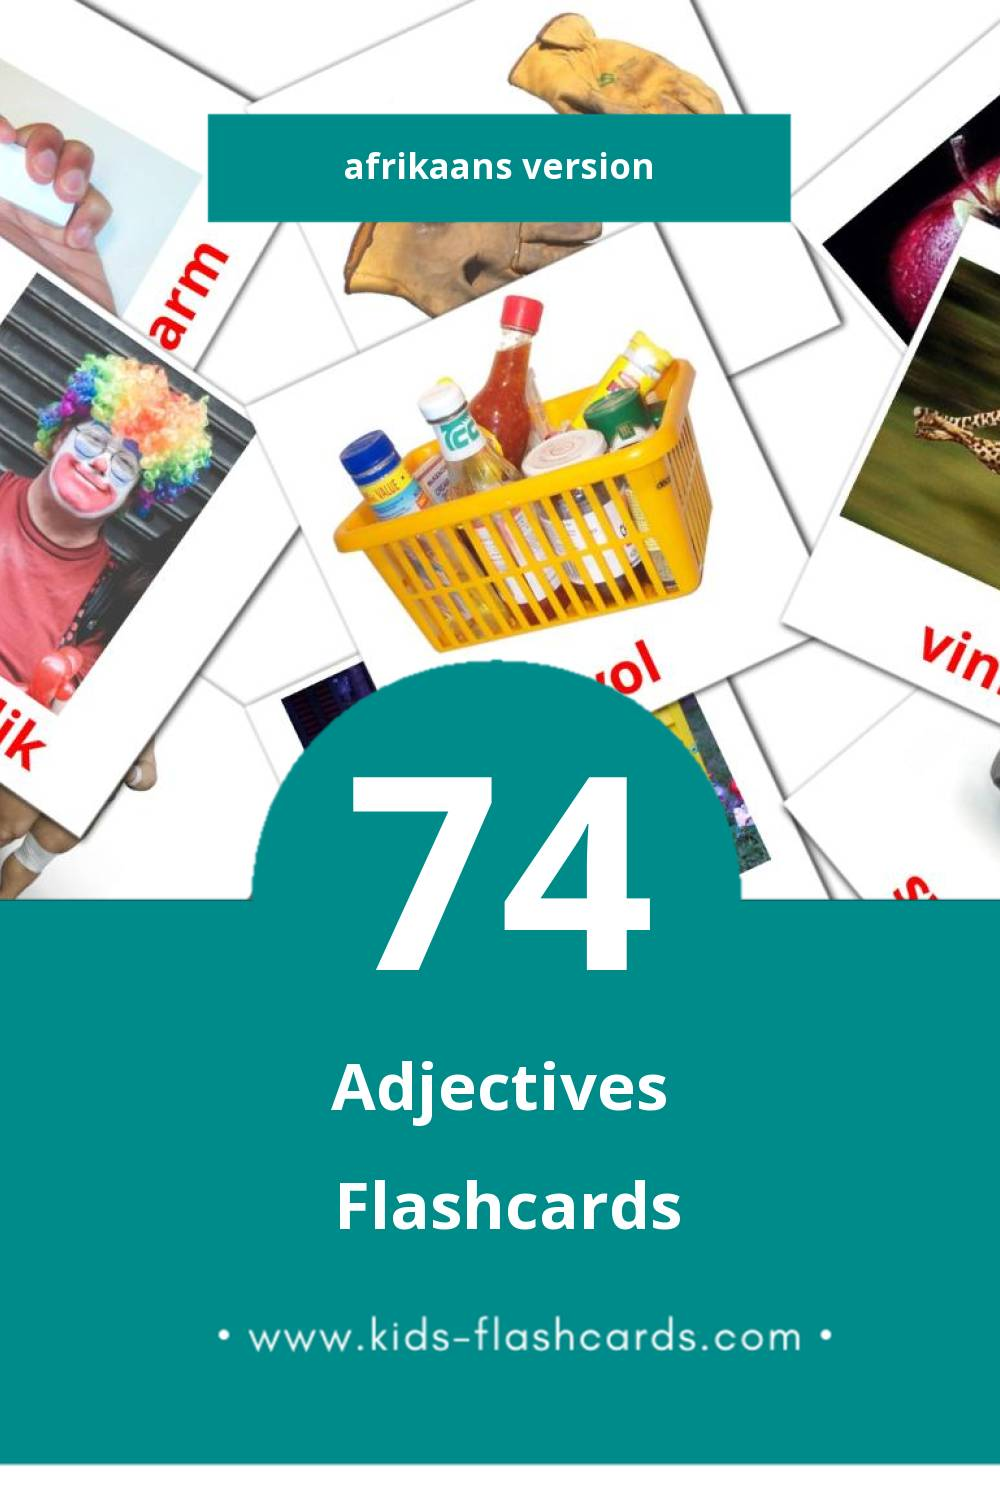 Visual Byvoeglike naamwoorde Flashcards for Toddlers (74 cards in Afrikaans)